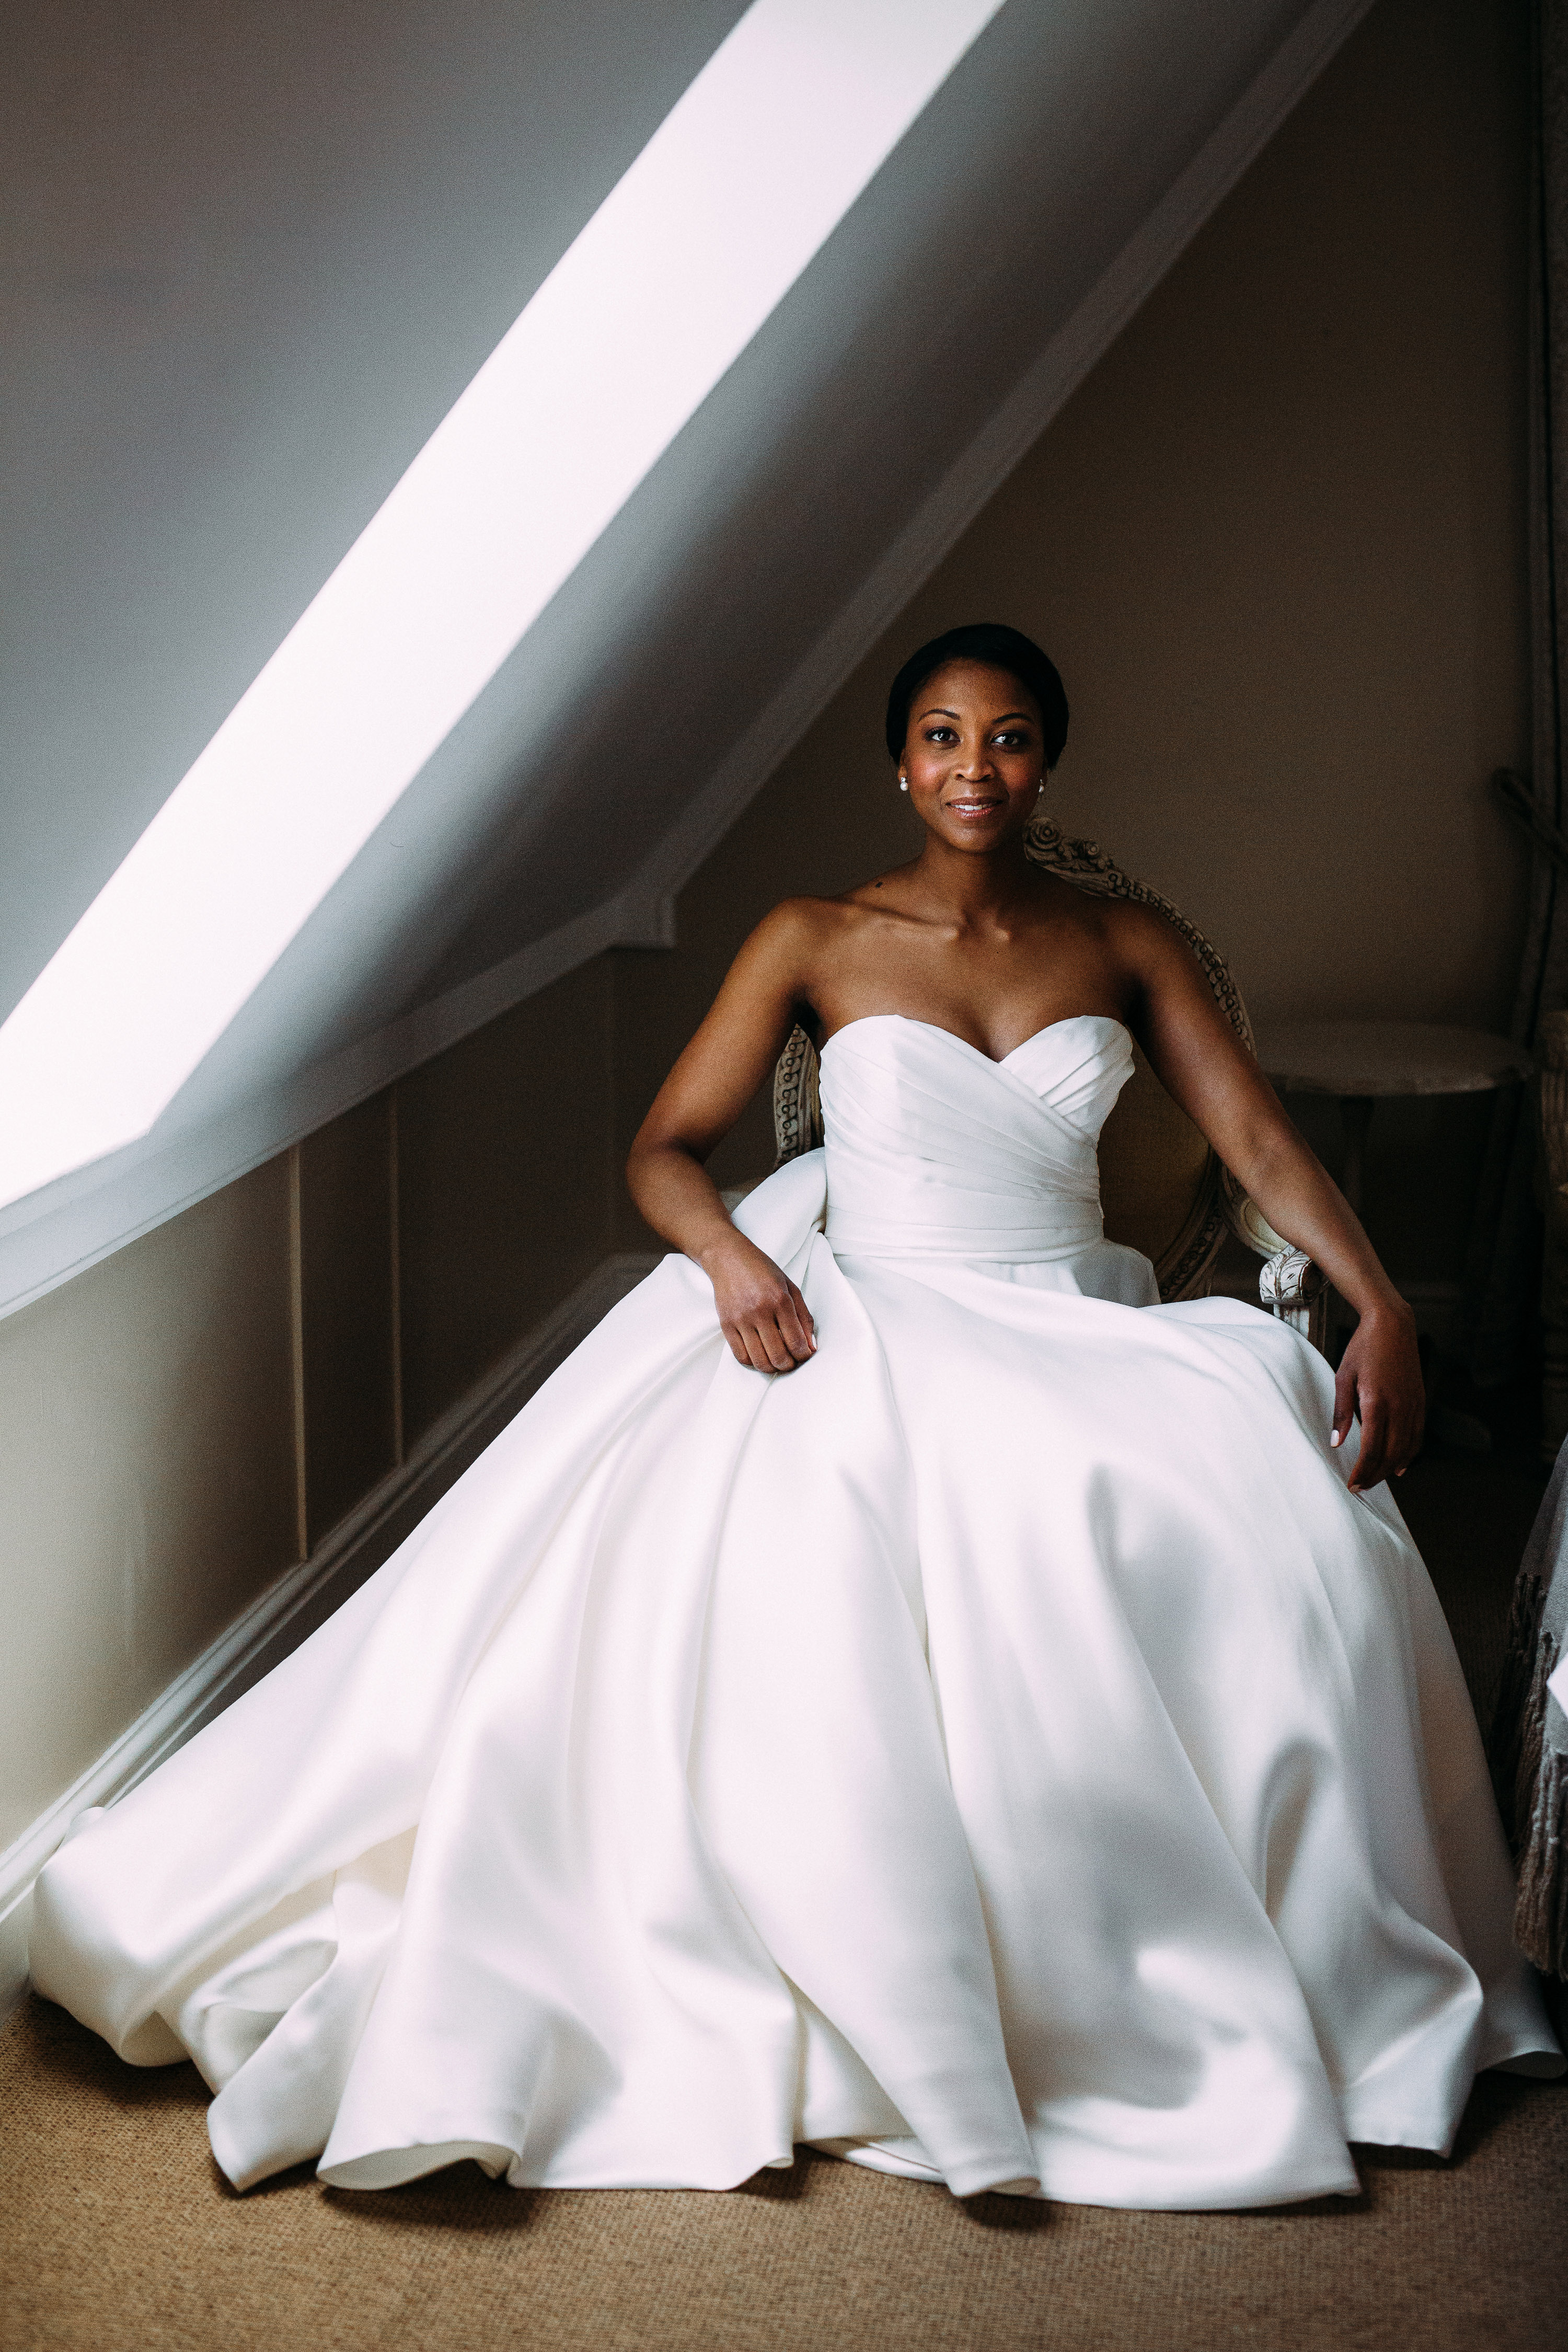 Wearing a Strapless Wedding Dress? Here's How to Make Décolletage Shine on the Big Day